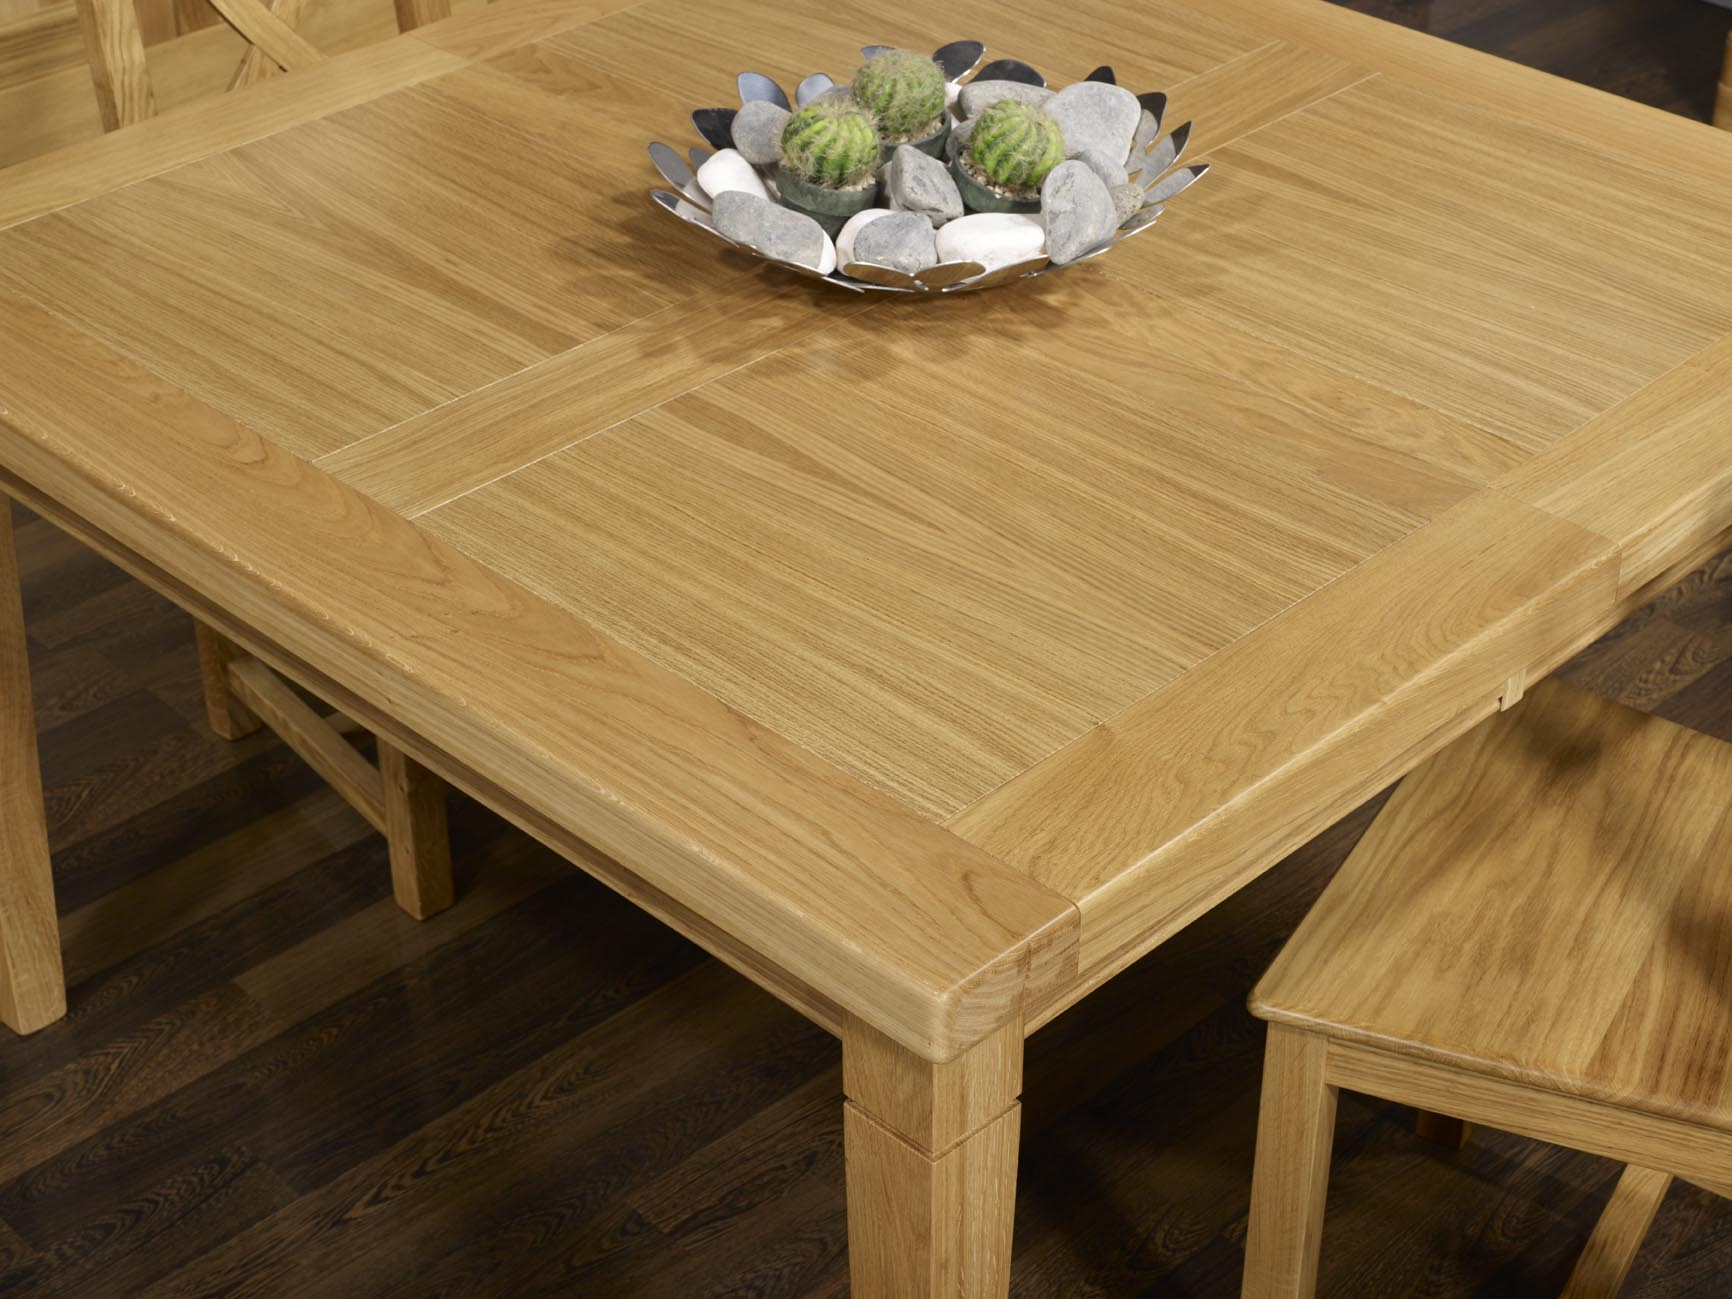 Table de repas carr e en ch ne massif 150x150 meuble en for Table carree 150 x 150